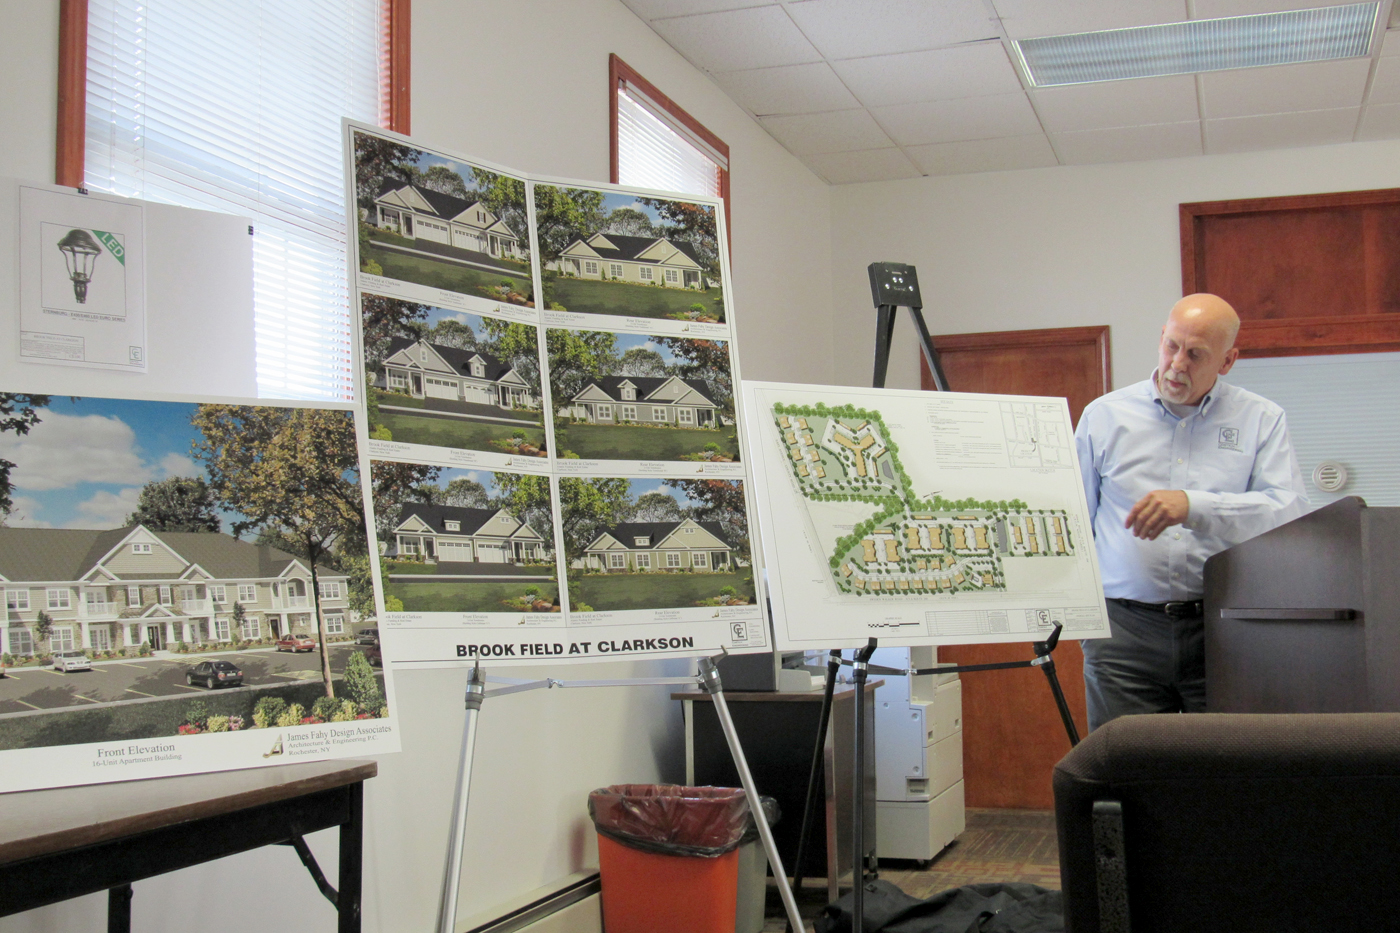 Michael Montalto of Costich Engineering reviews site plans and elevations for the proposed Brook Field at Clarkson housing development during a public hearing held Tuesday, June 7 by the Clarkson Planning Board. K. Gabalski photo